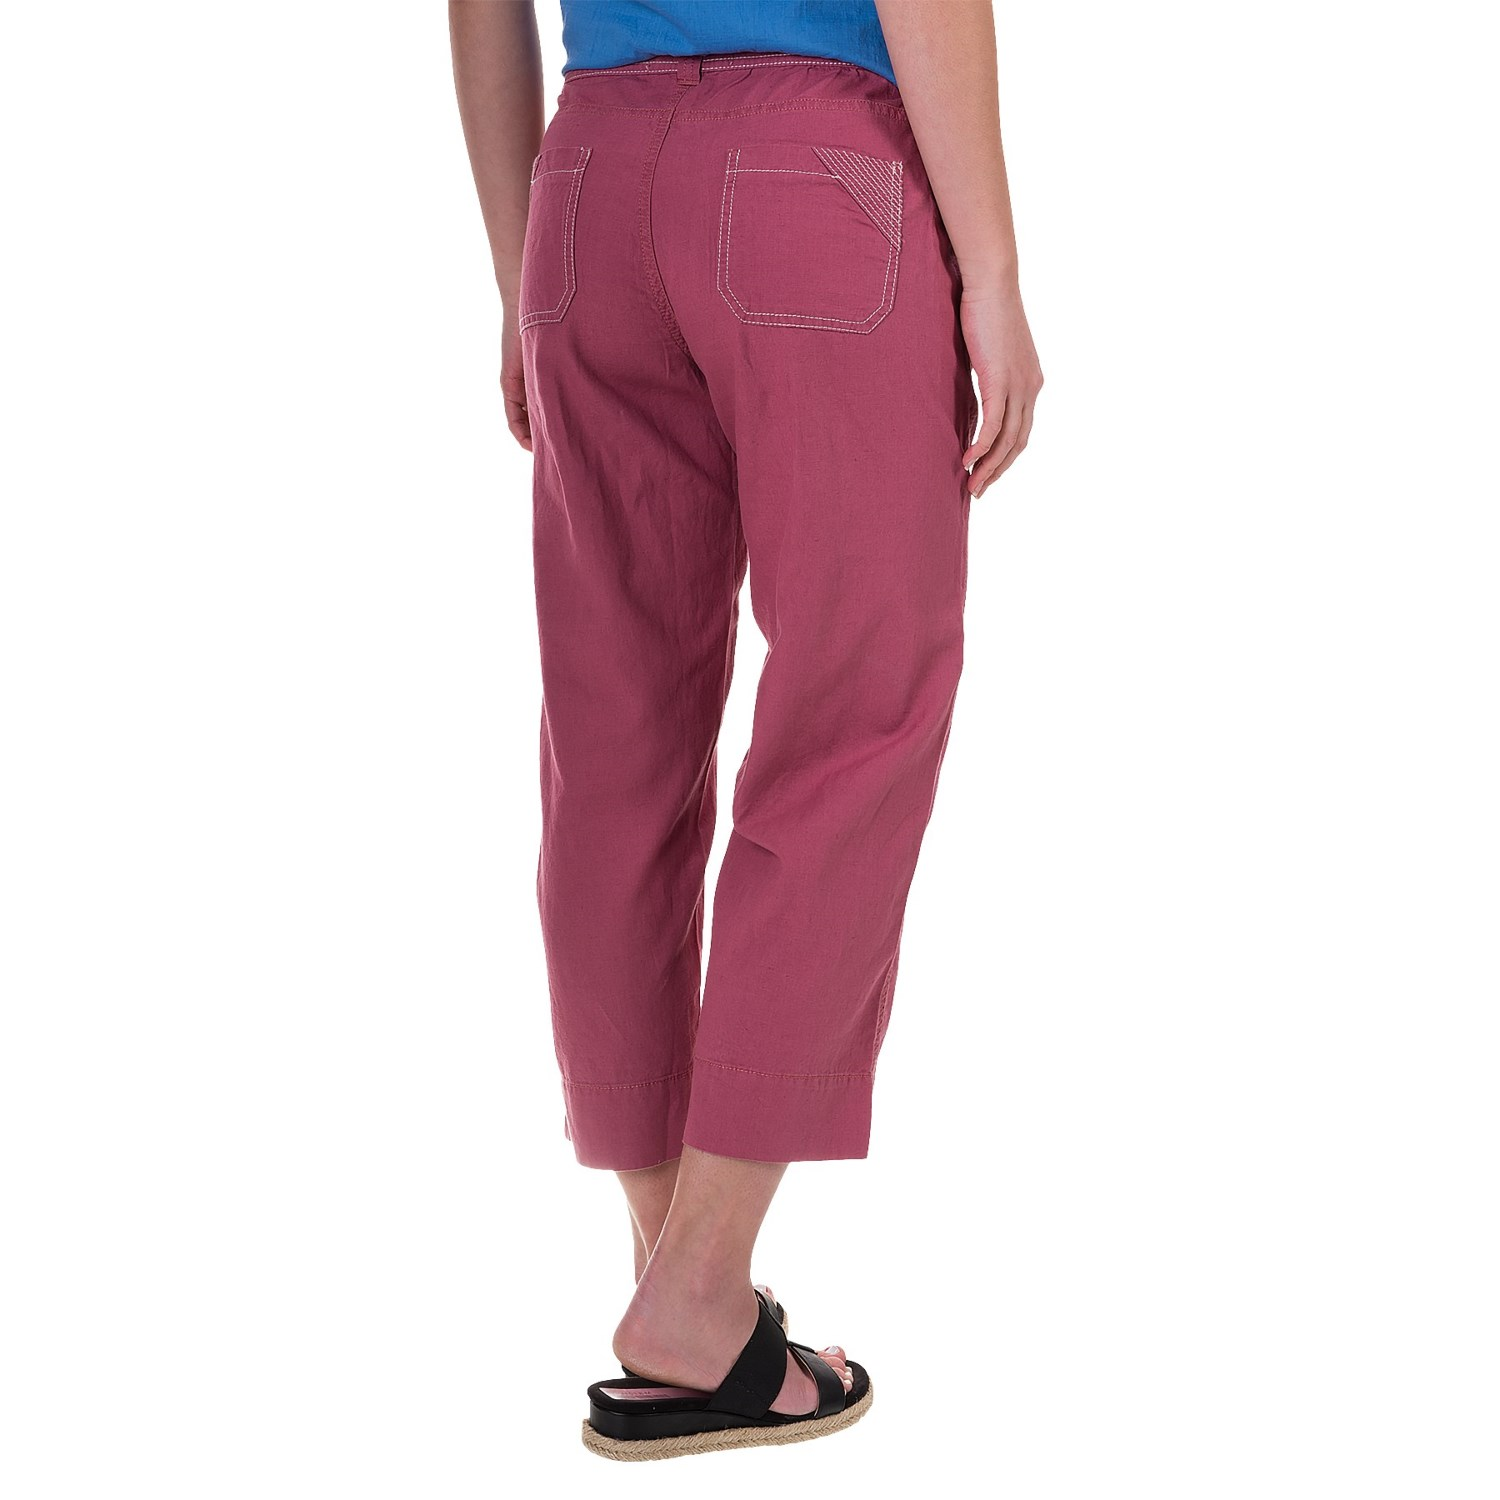 aventura clothing harlow capris for save 86